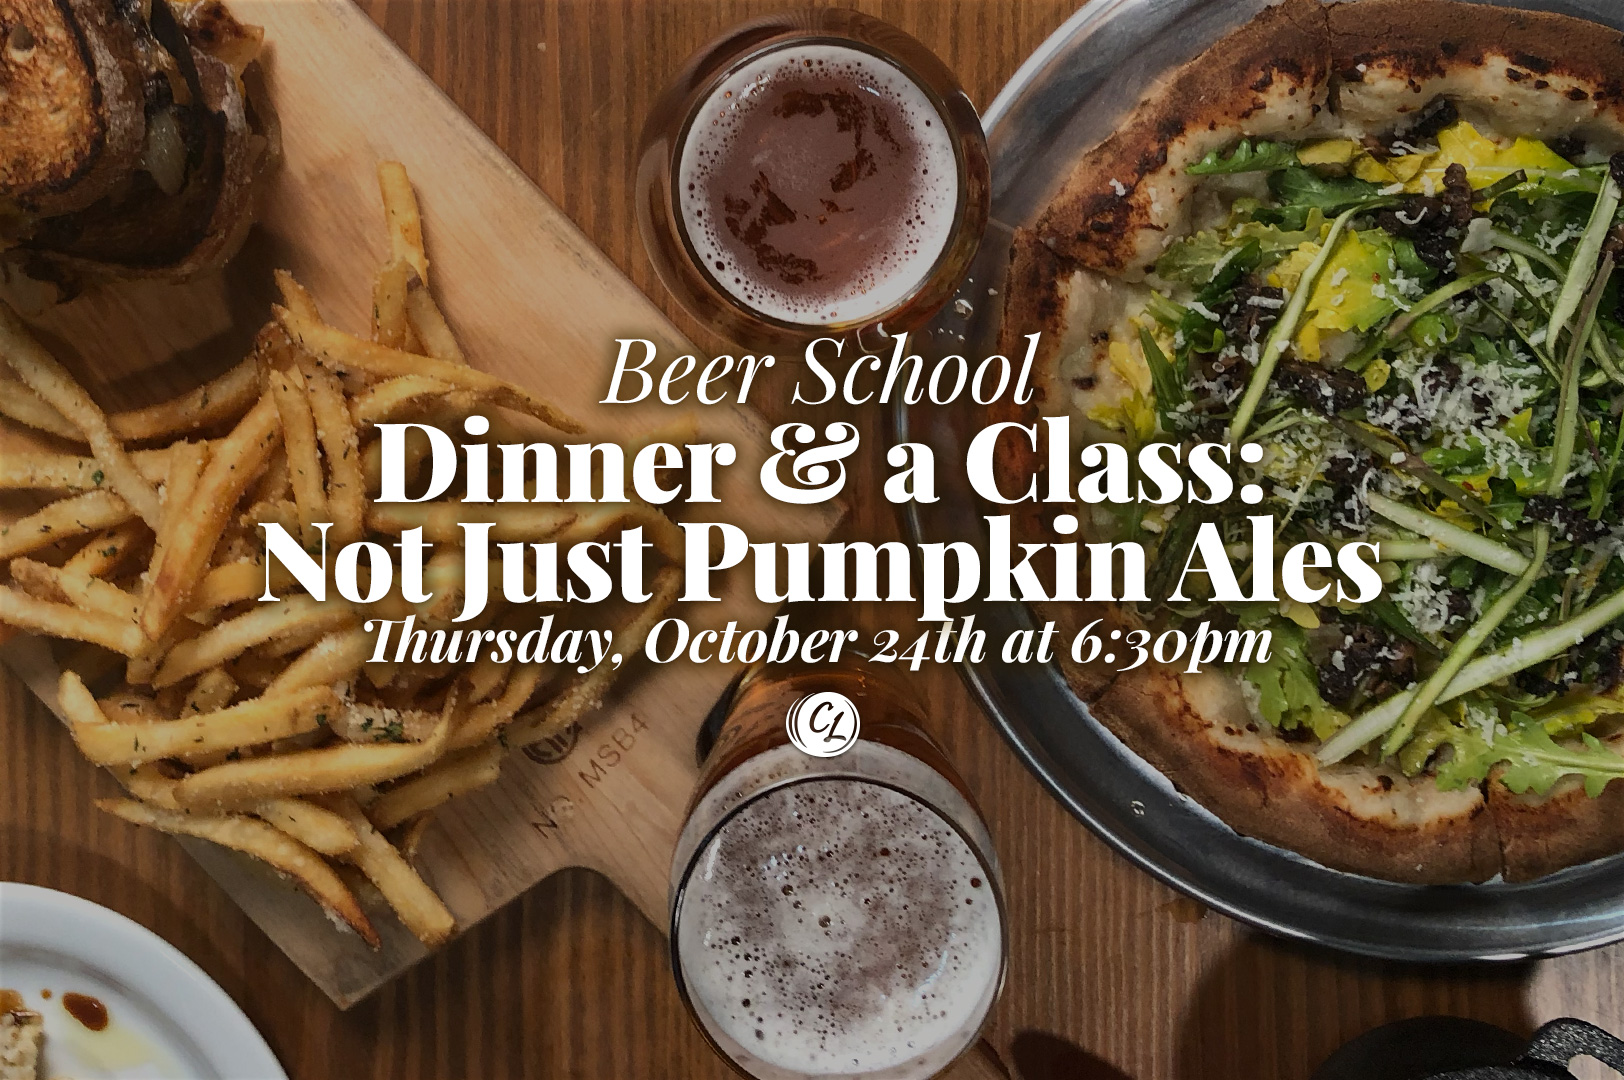 Beer School - Dinner and a Class: Not Just Pumpkin Ales. Thursday, October 24th at 6:30PM